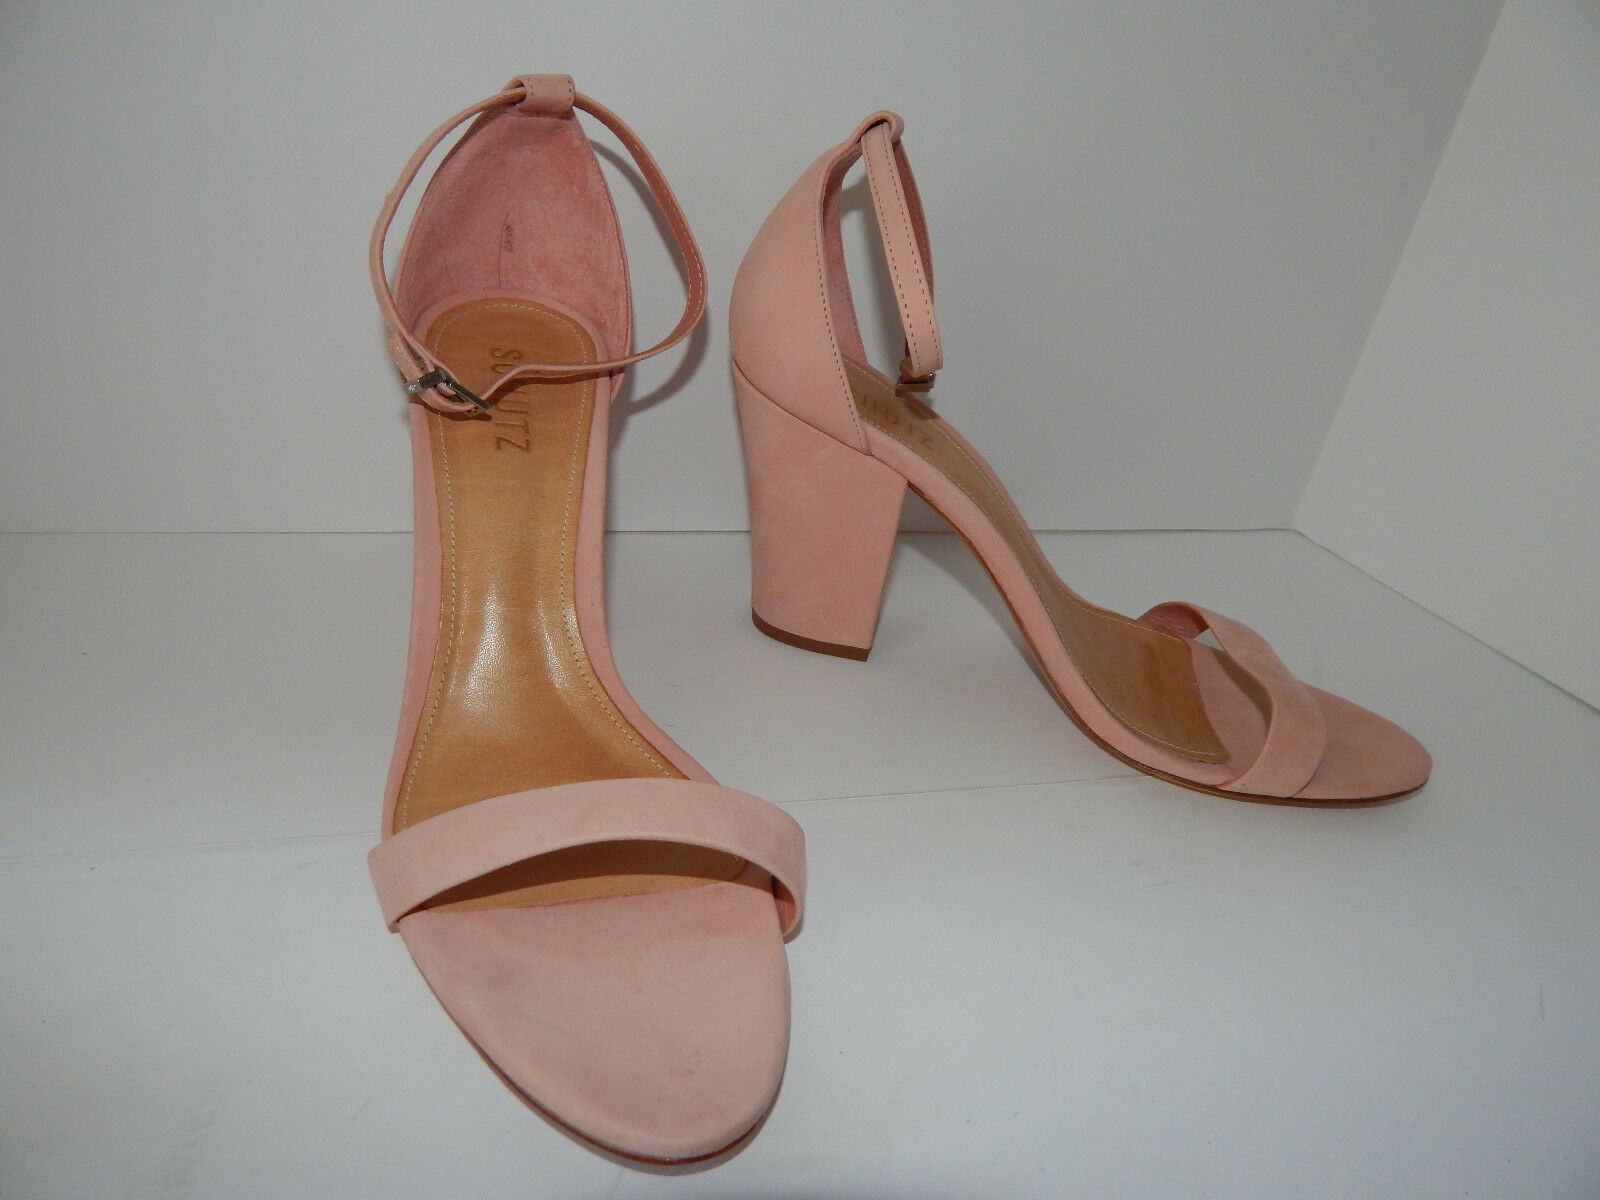 BHLDN 6 HEELS NUBUCK LEATHER pink ANKLE BUCKLE BRIDAL ALICIA SCHUTZ  170 EUC